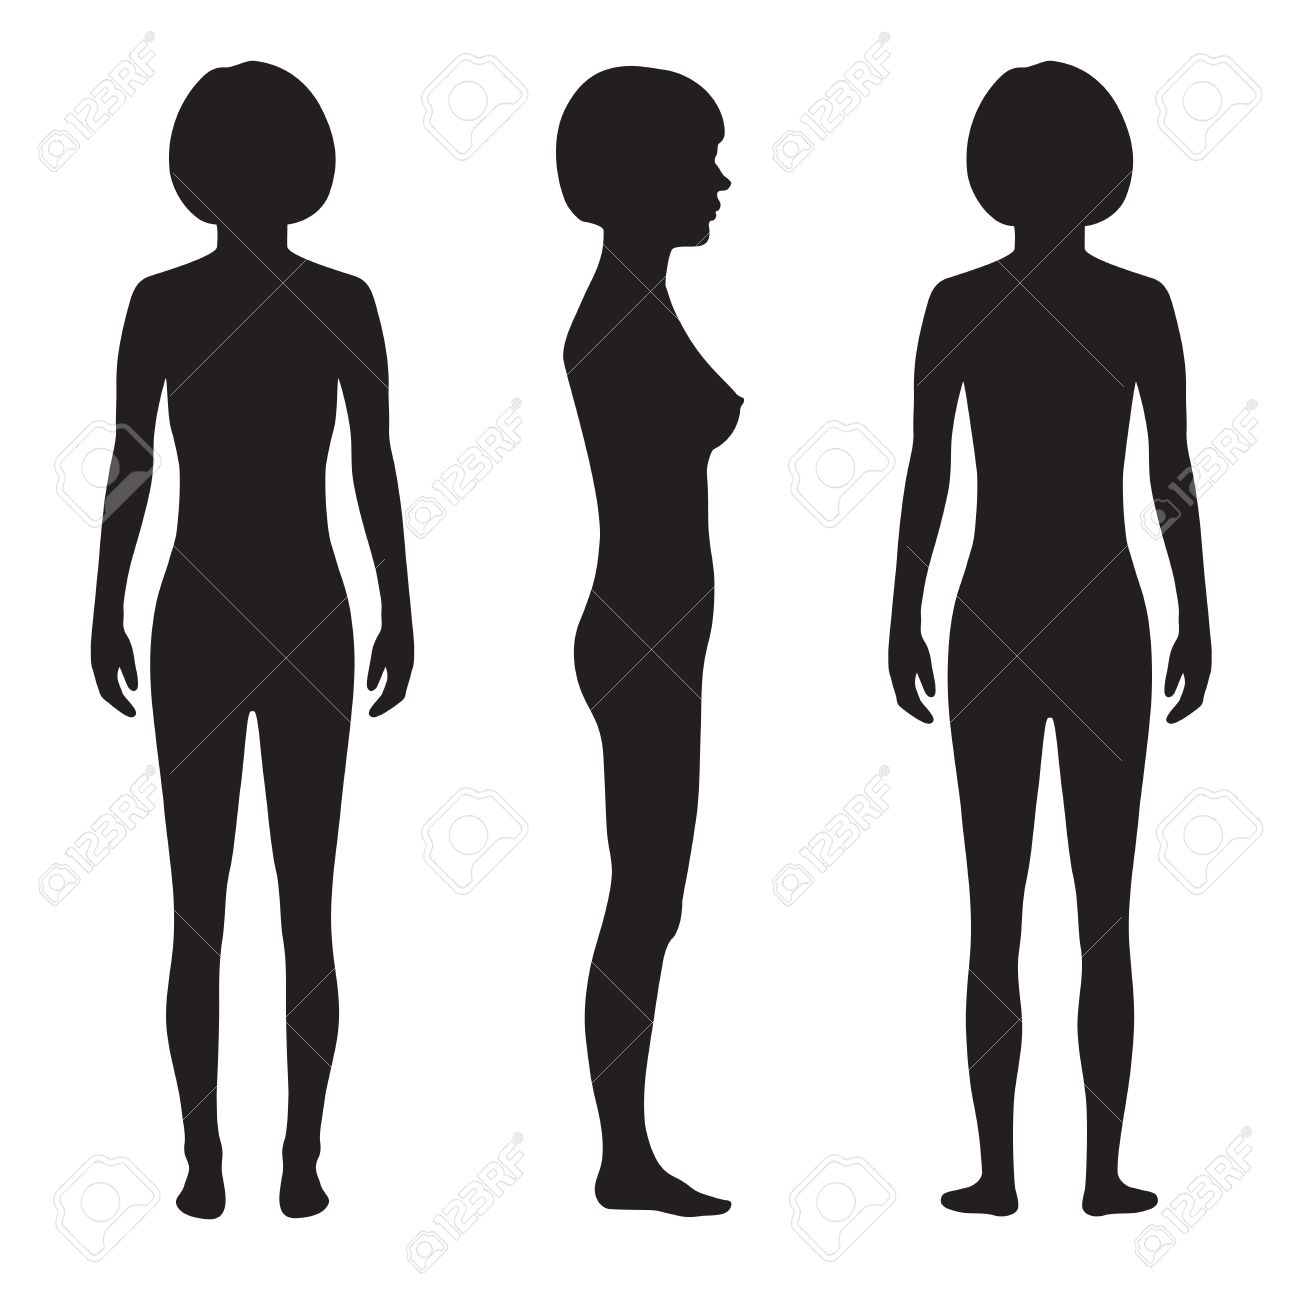 human body anatomy front back side vector woman silhouette royalty rh 123rf com woman silhouette vector free woman silhouette vector download